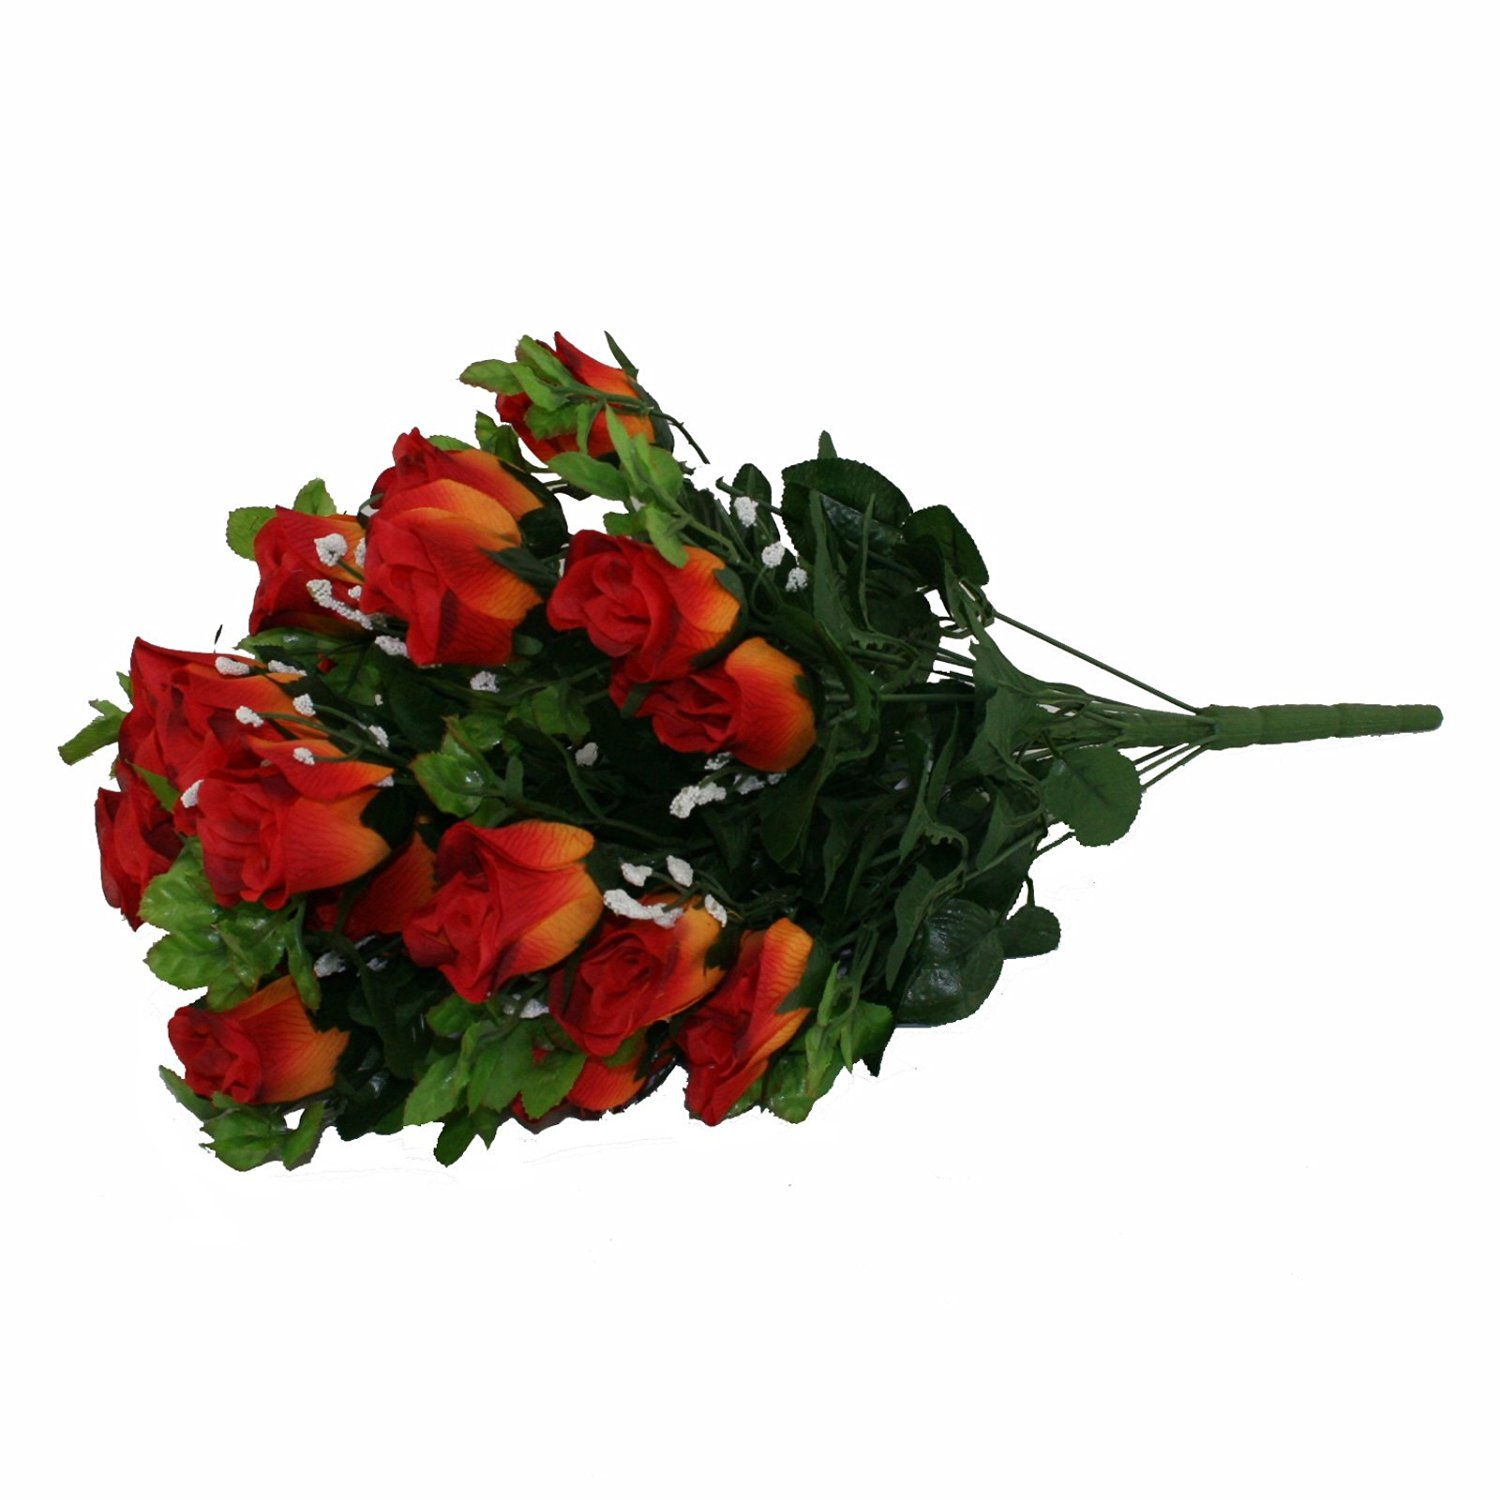 Cheap plastic flower stems find plastic flower stems deals on line get quotations floristrywarehouse artificial silk flower burnt orange rose gyp bunch 24 stems of roses 21 inches izmirmasajfo